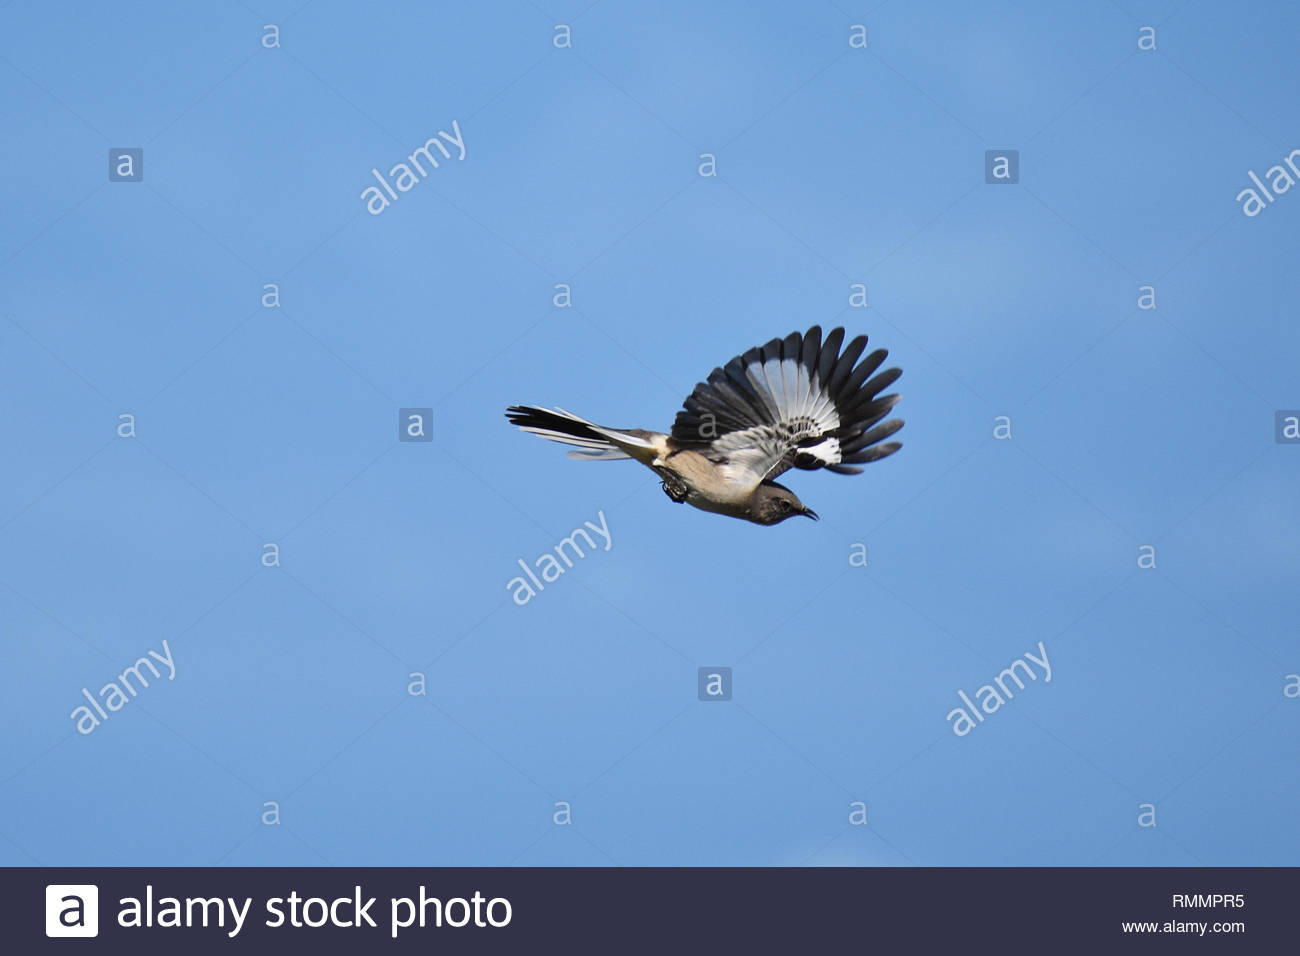 Flying polyglot mockingbird with blue sky - Stock Image